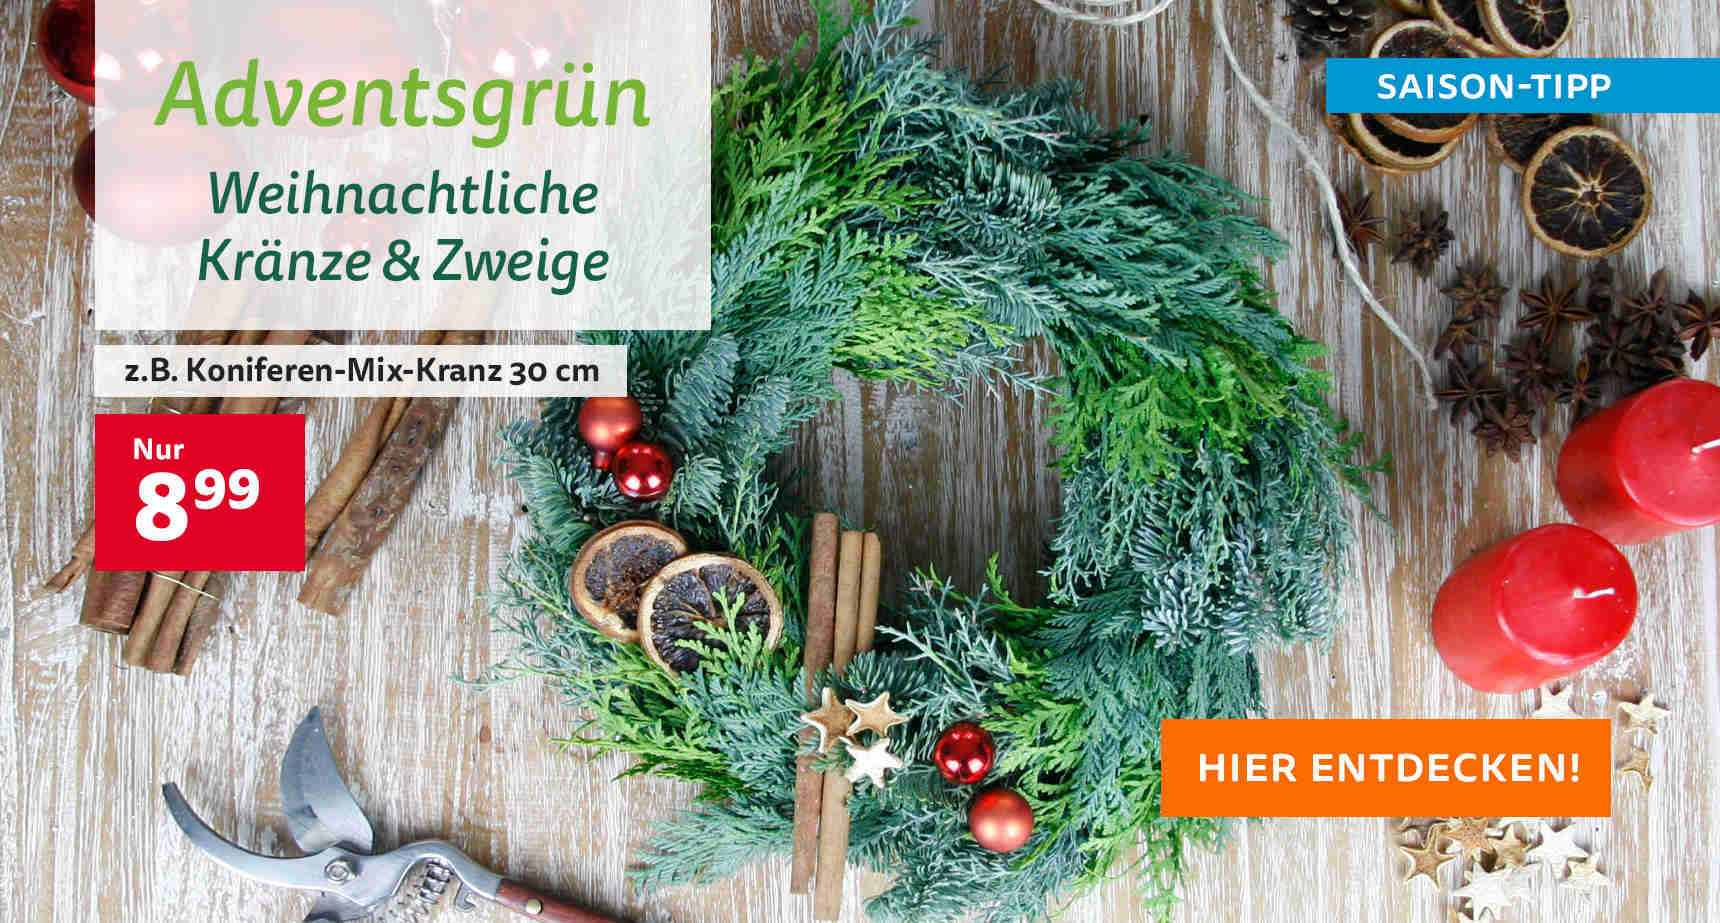 +++ (2) Adventsgrün +++ - 3